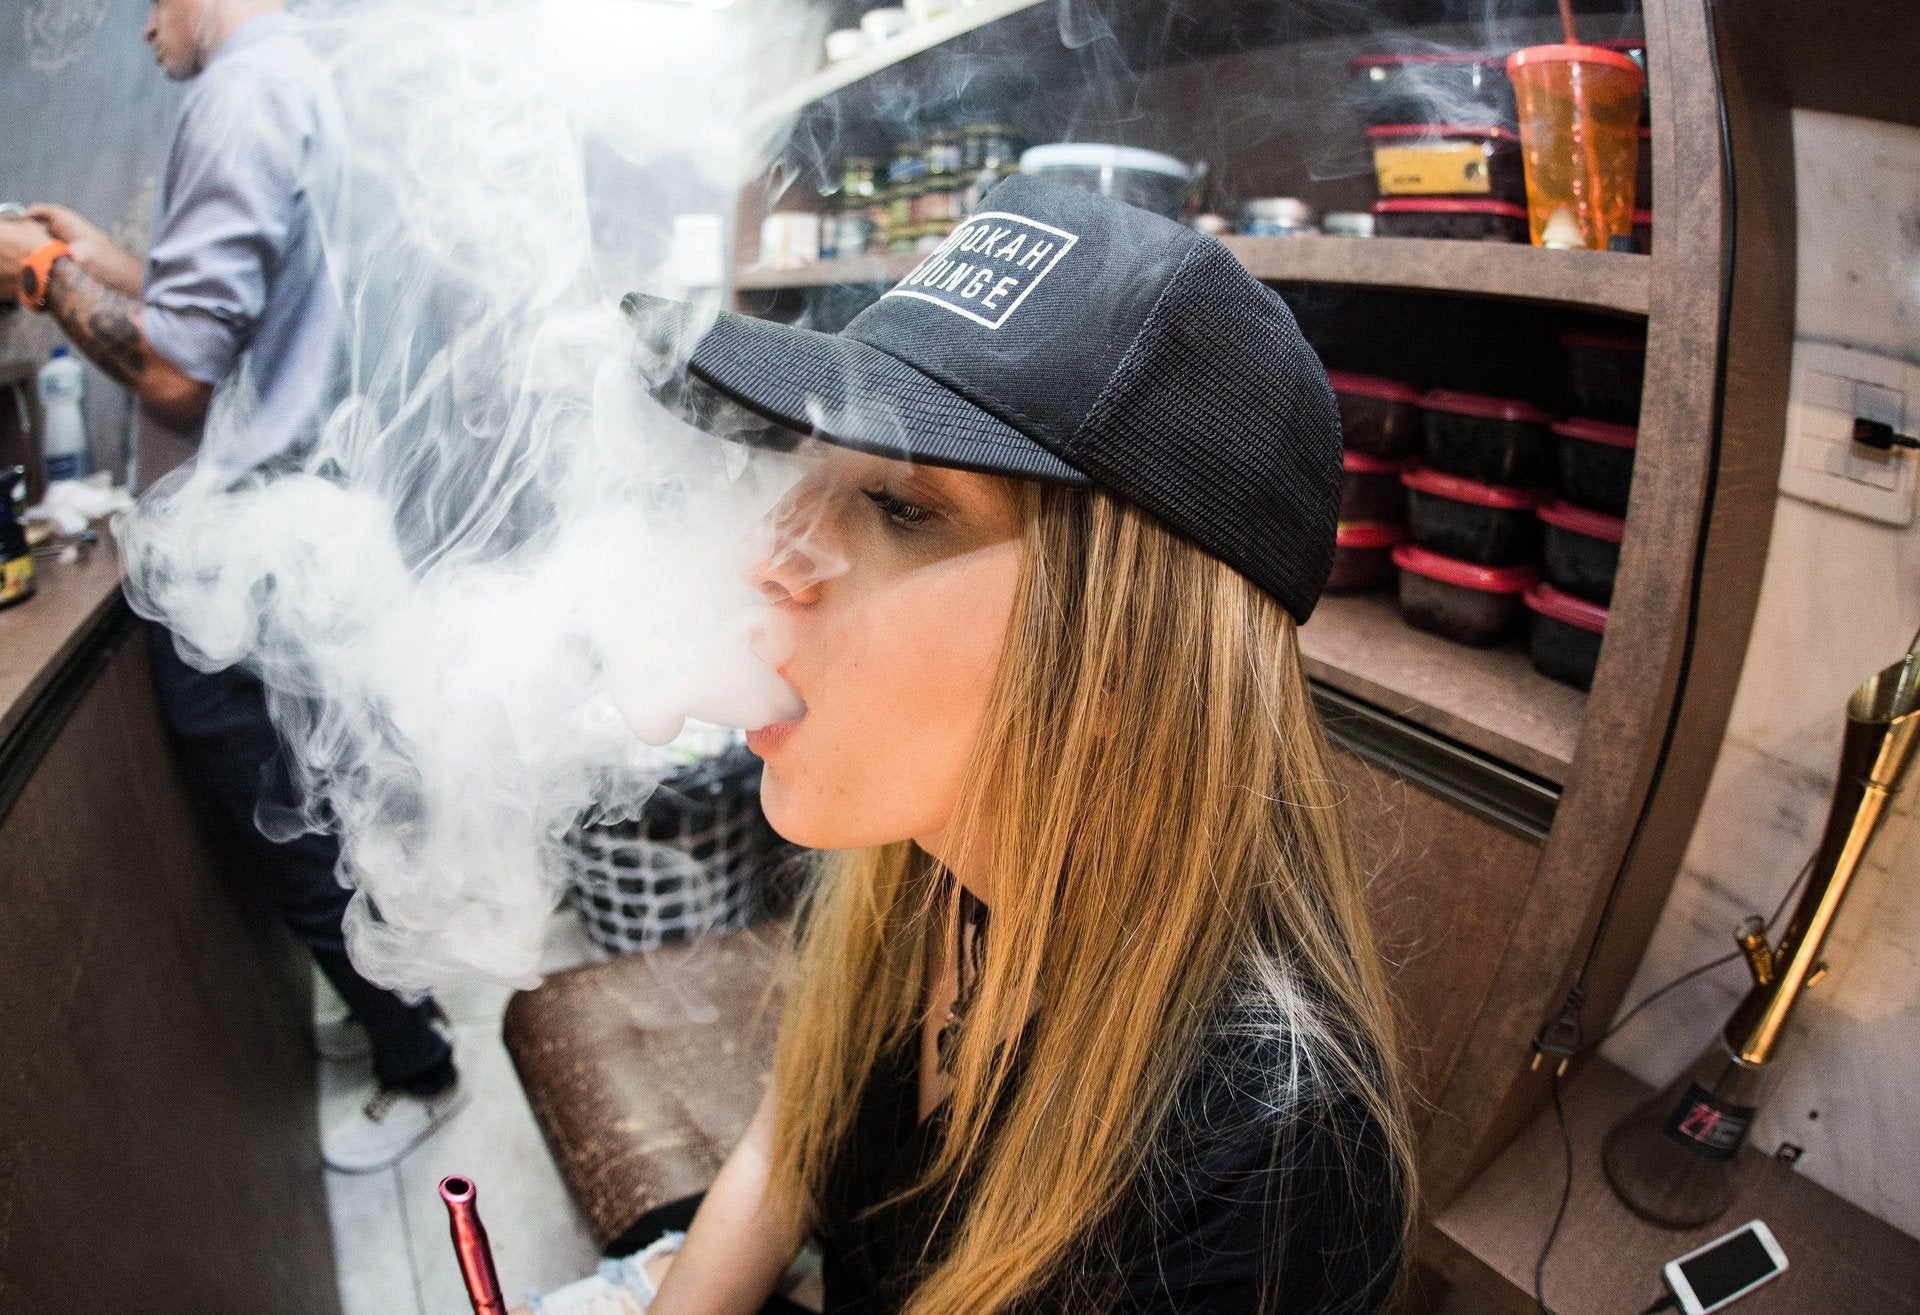 Vaping 101: Is Second Hand Vapour Hamrful to Your Health?